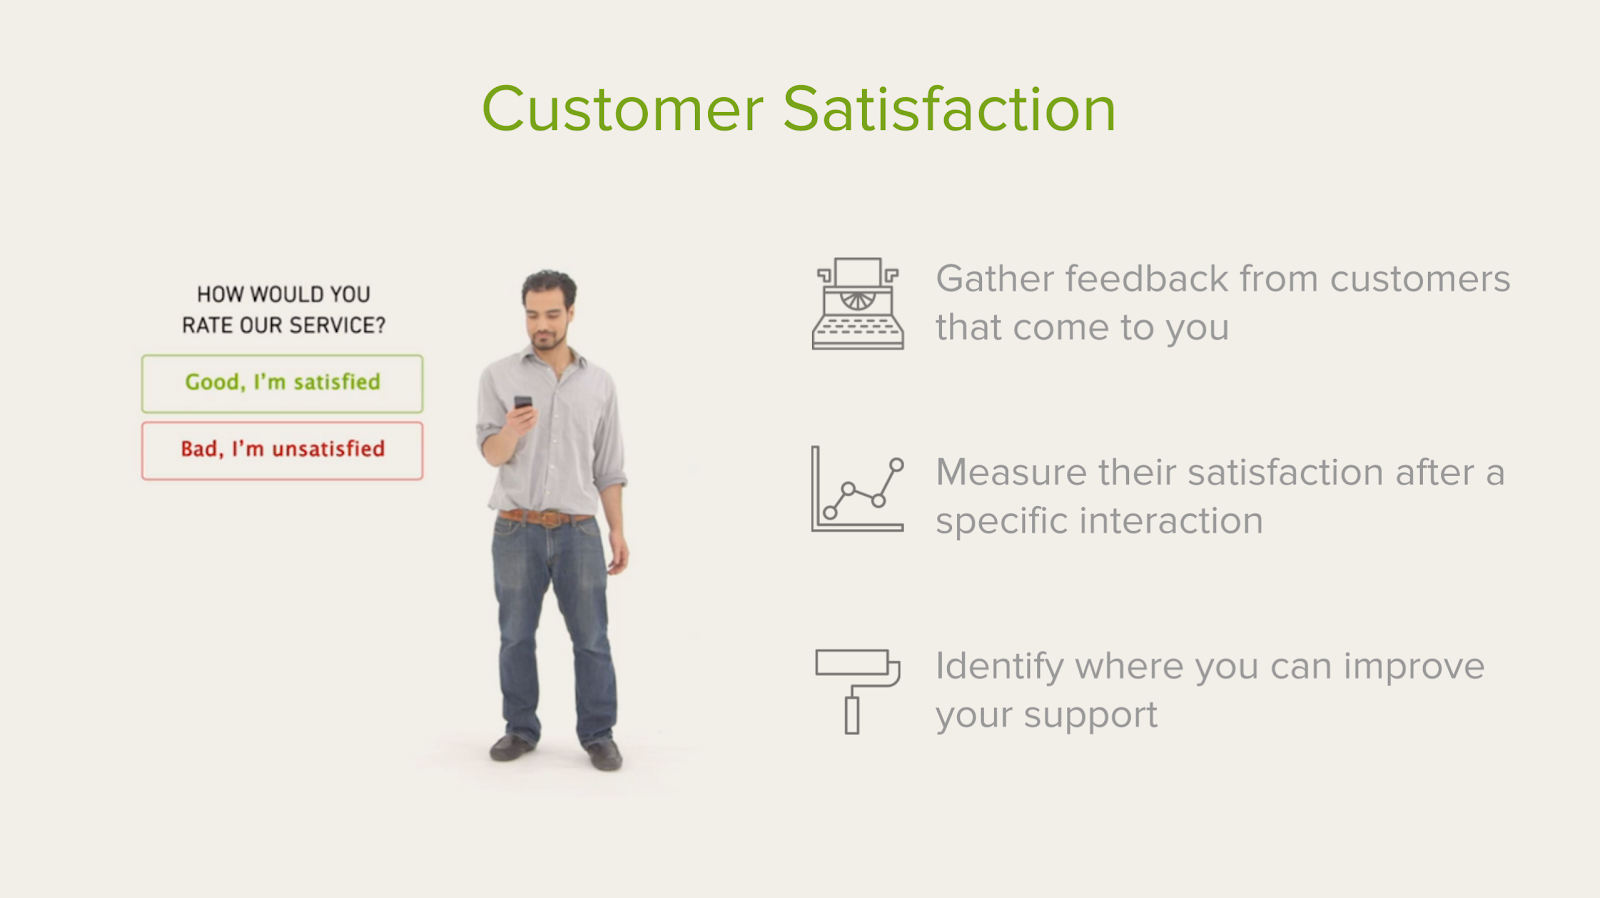 CSAT measures customer satisfaction.